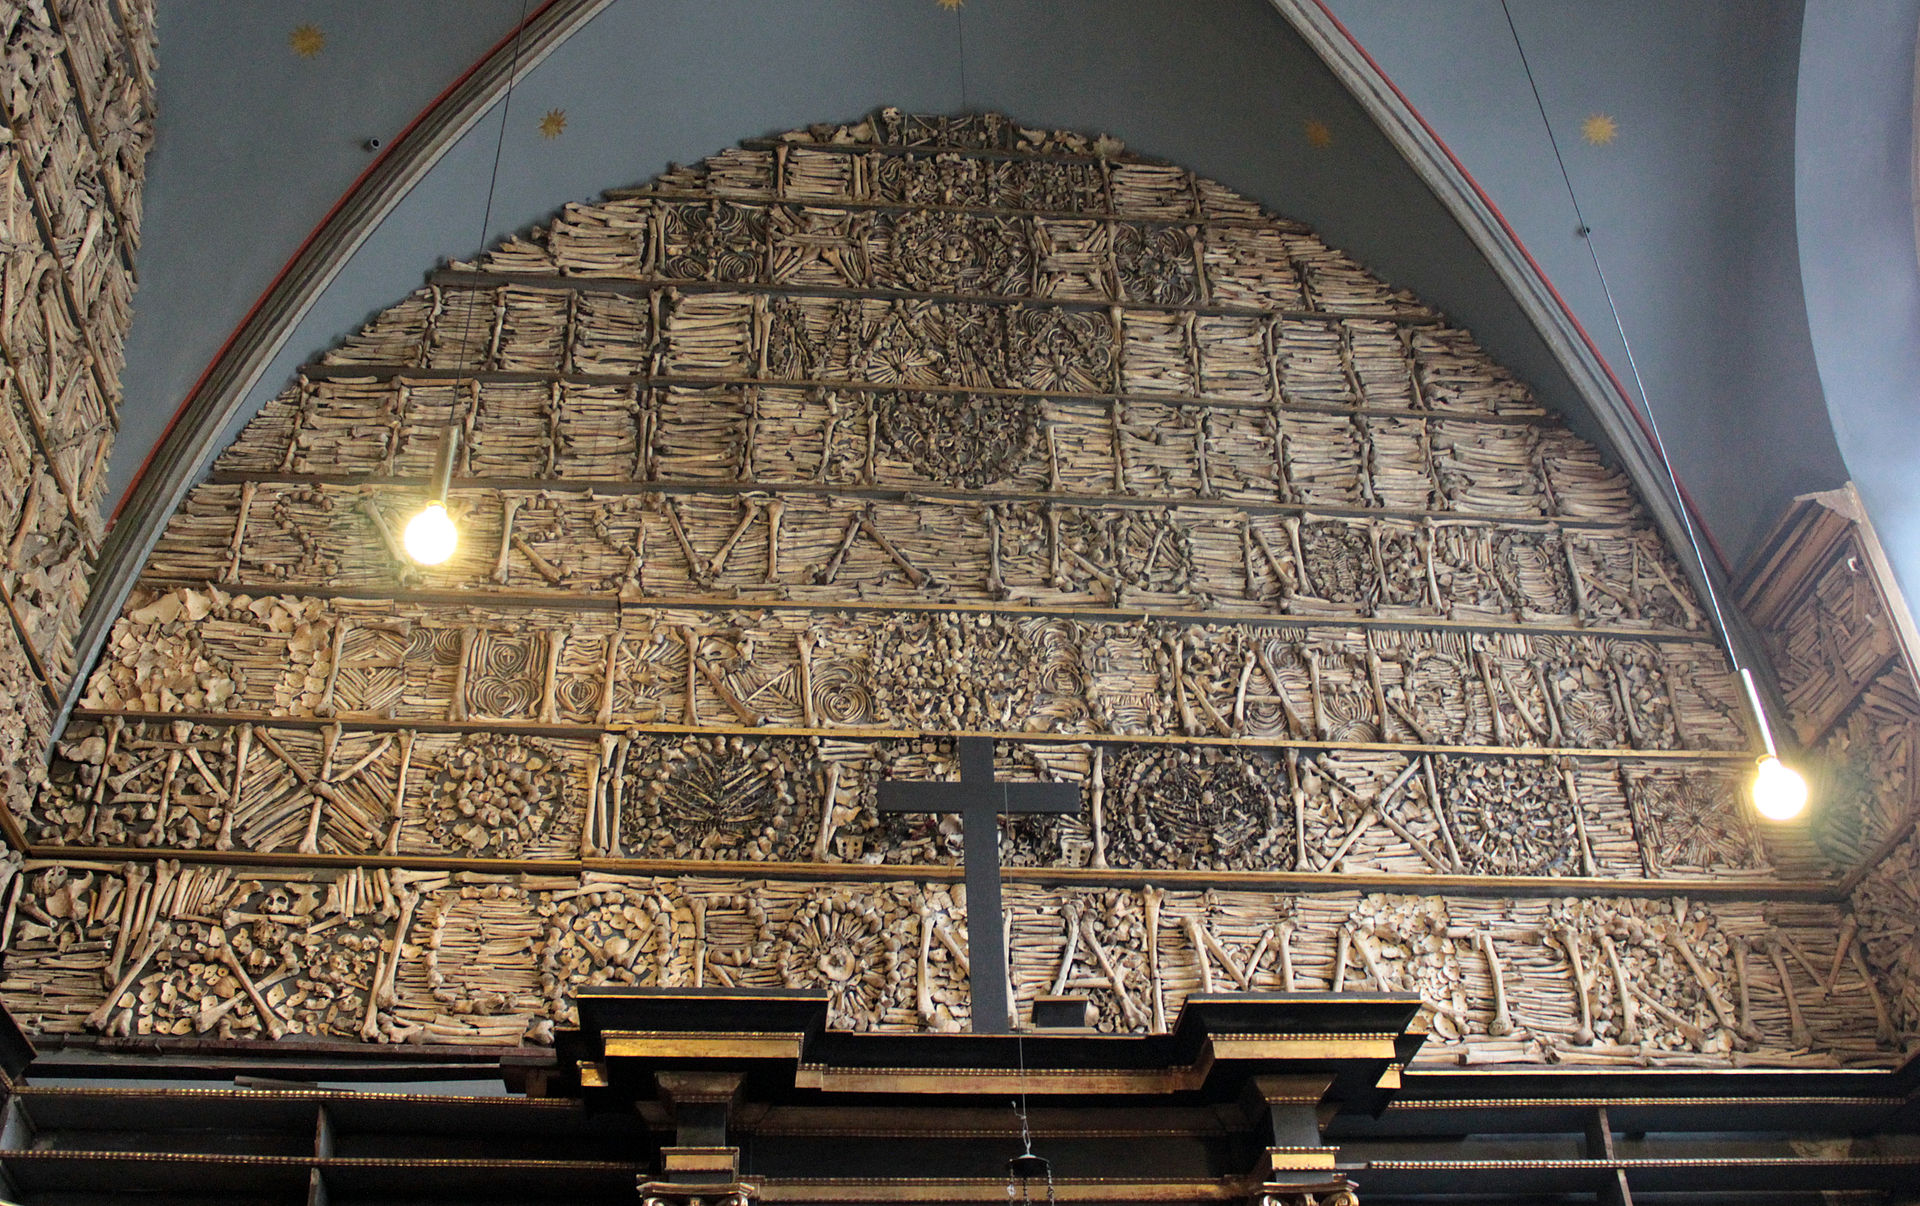 The wall of bones from the Church of St. Ursula and her 11,000 companions in Cologne, Germany